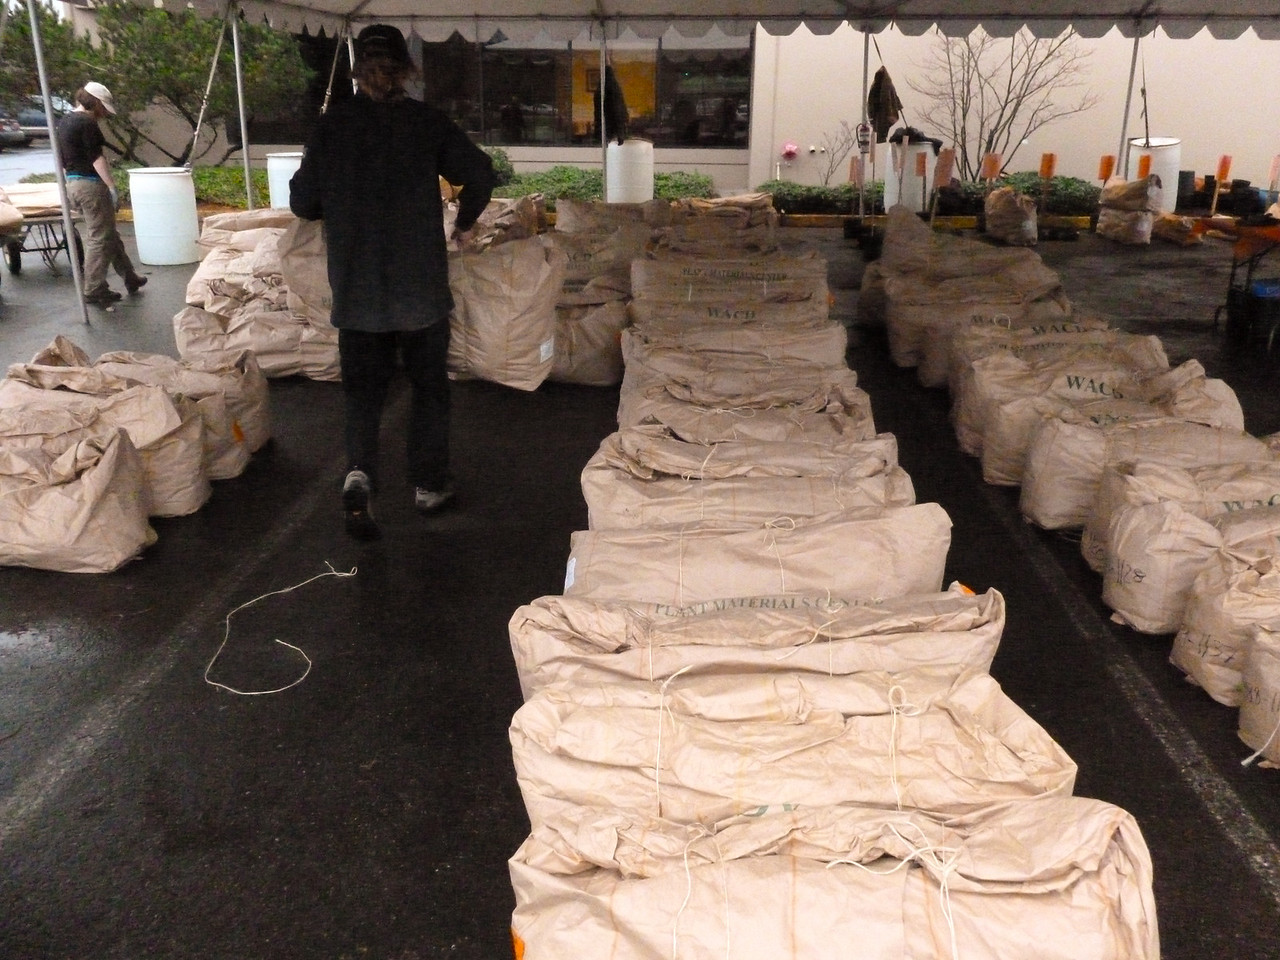 Bags of Tree seedlings.  I get 2 bags containing Douglas Firs, Sitka Spruce and Vine Maples totaling 310 tree seedlings.